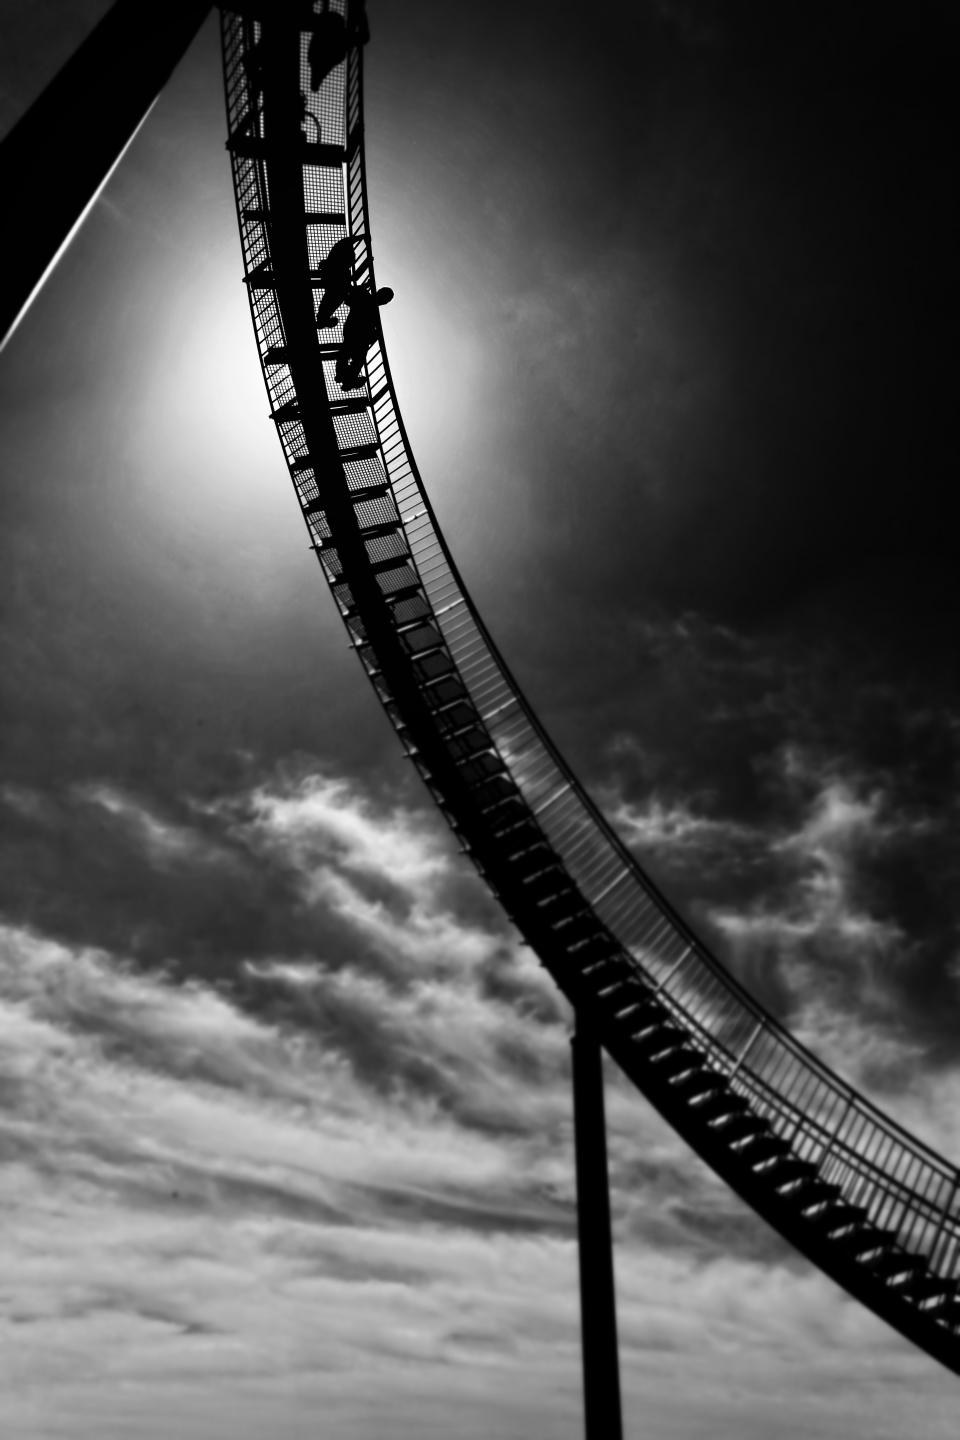 clouds sky black and white stairs architecture structure people silhouette roller coaster ride adventure